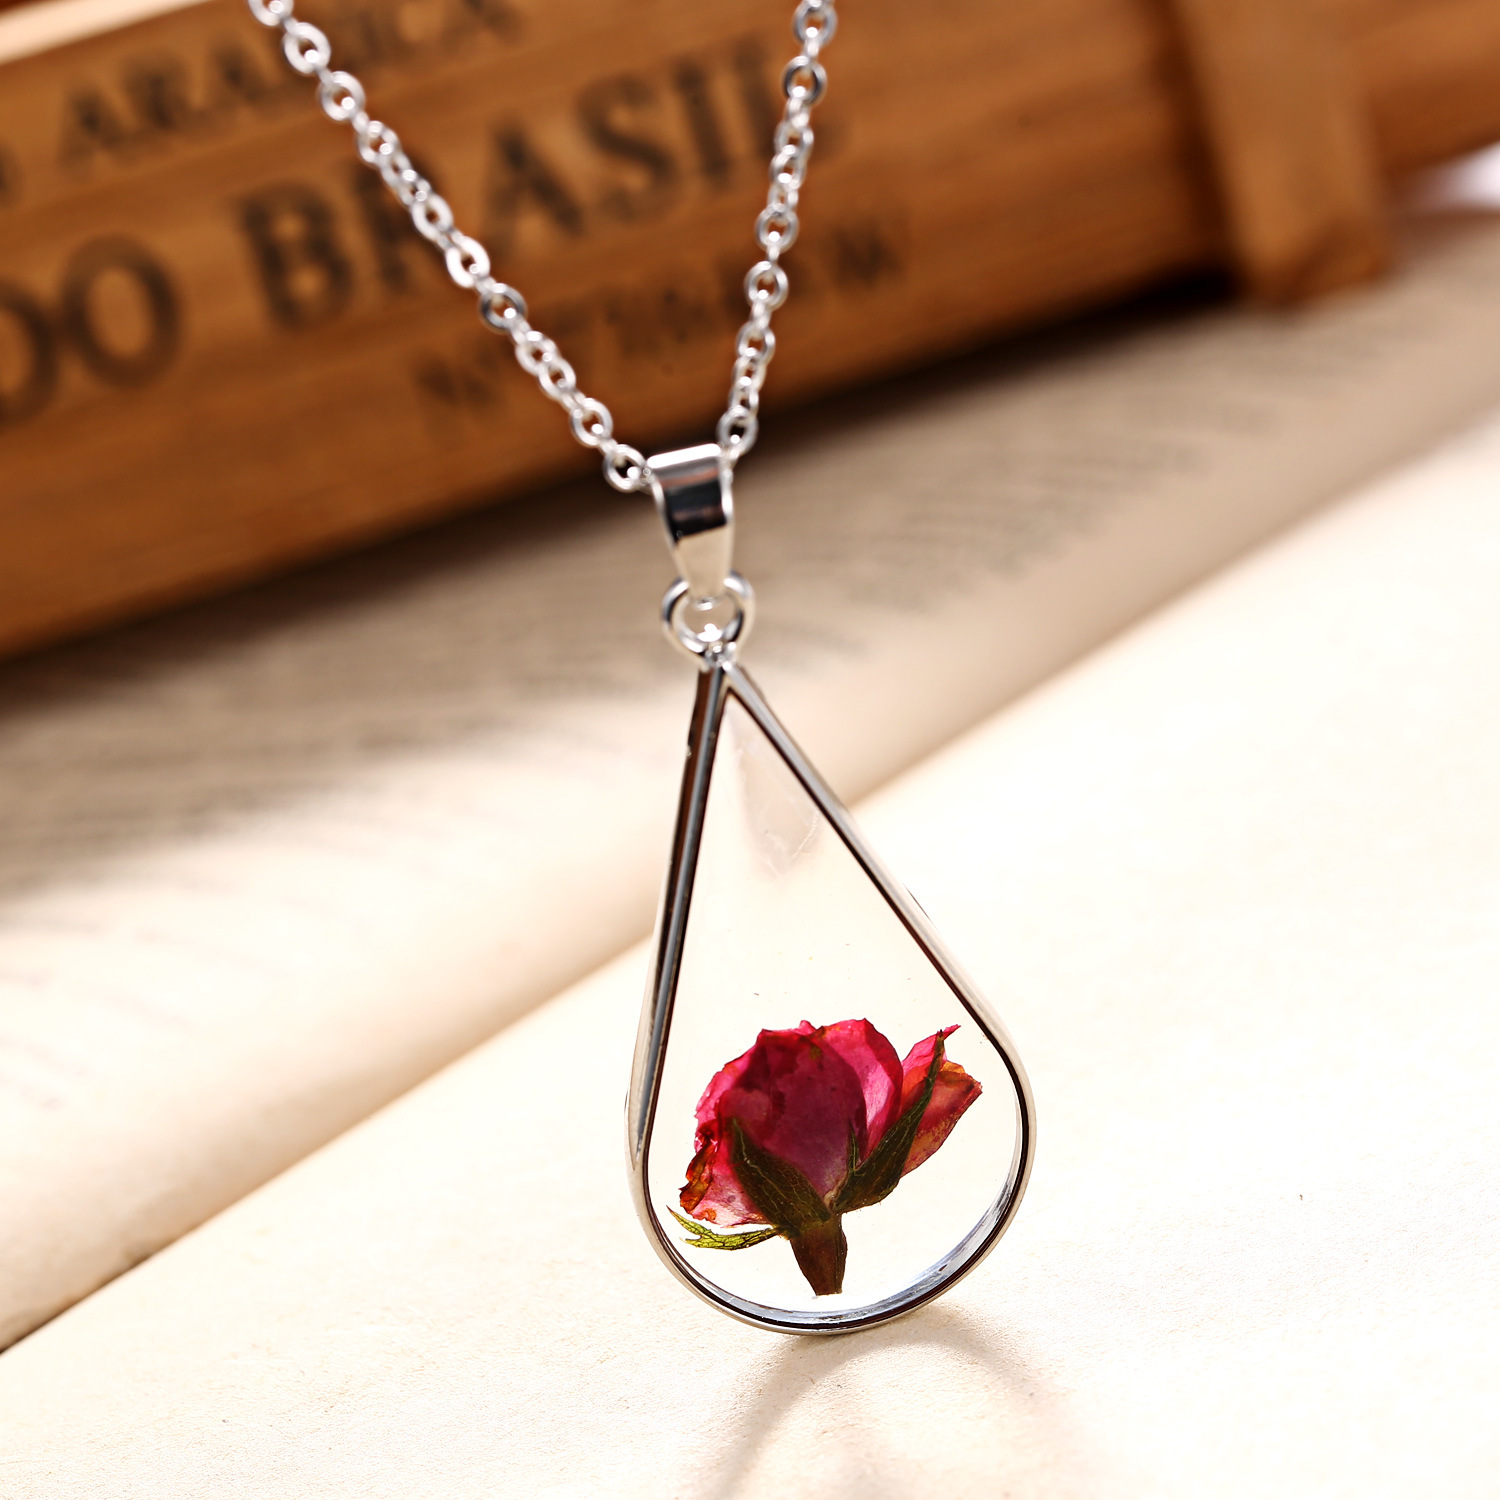 Handmade Accessory Jewelry Resin Pendant /& Necklace Real dried flowers